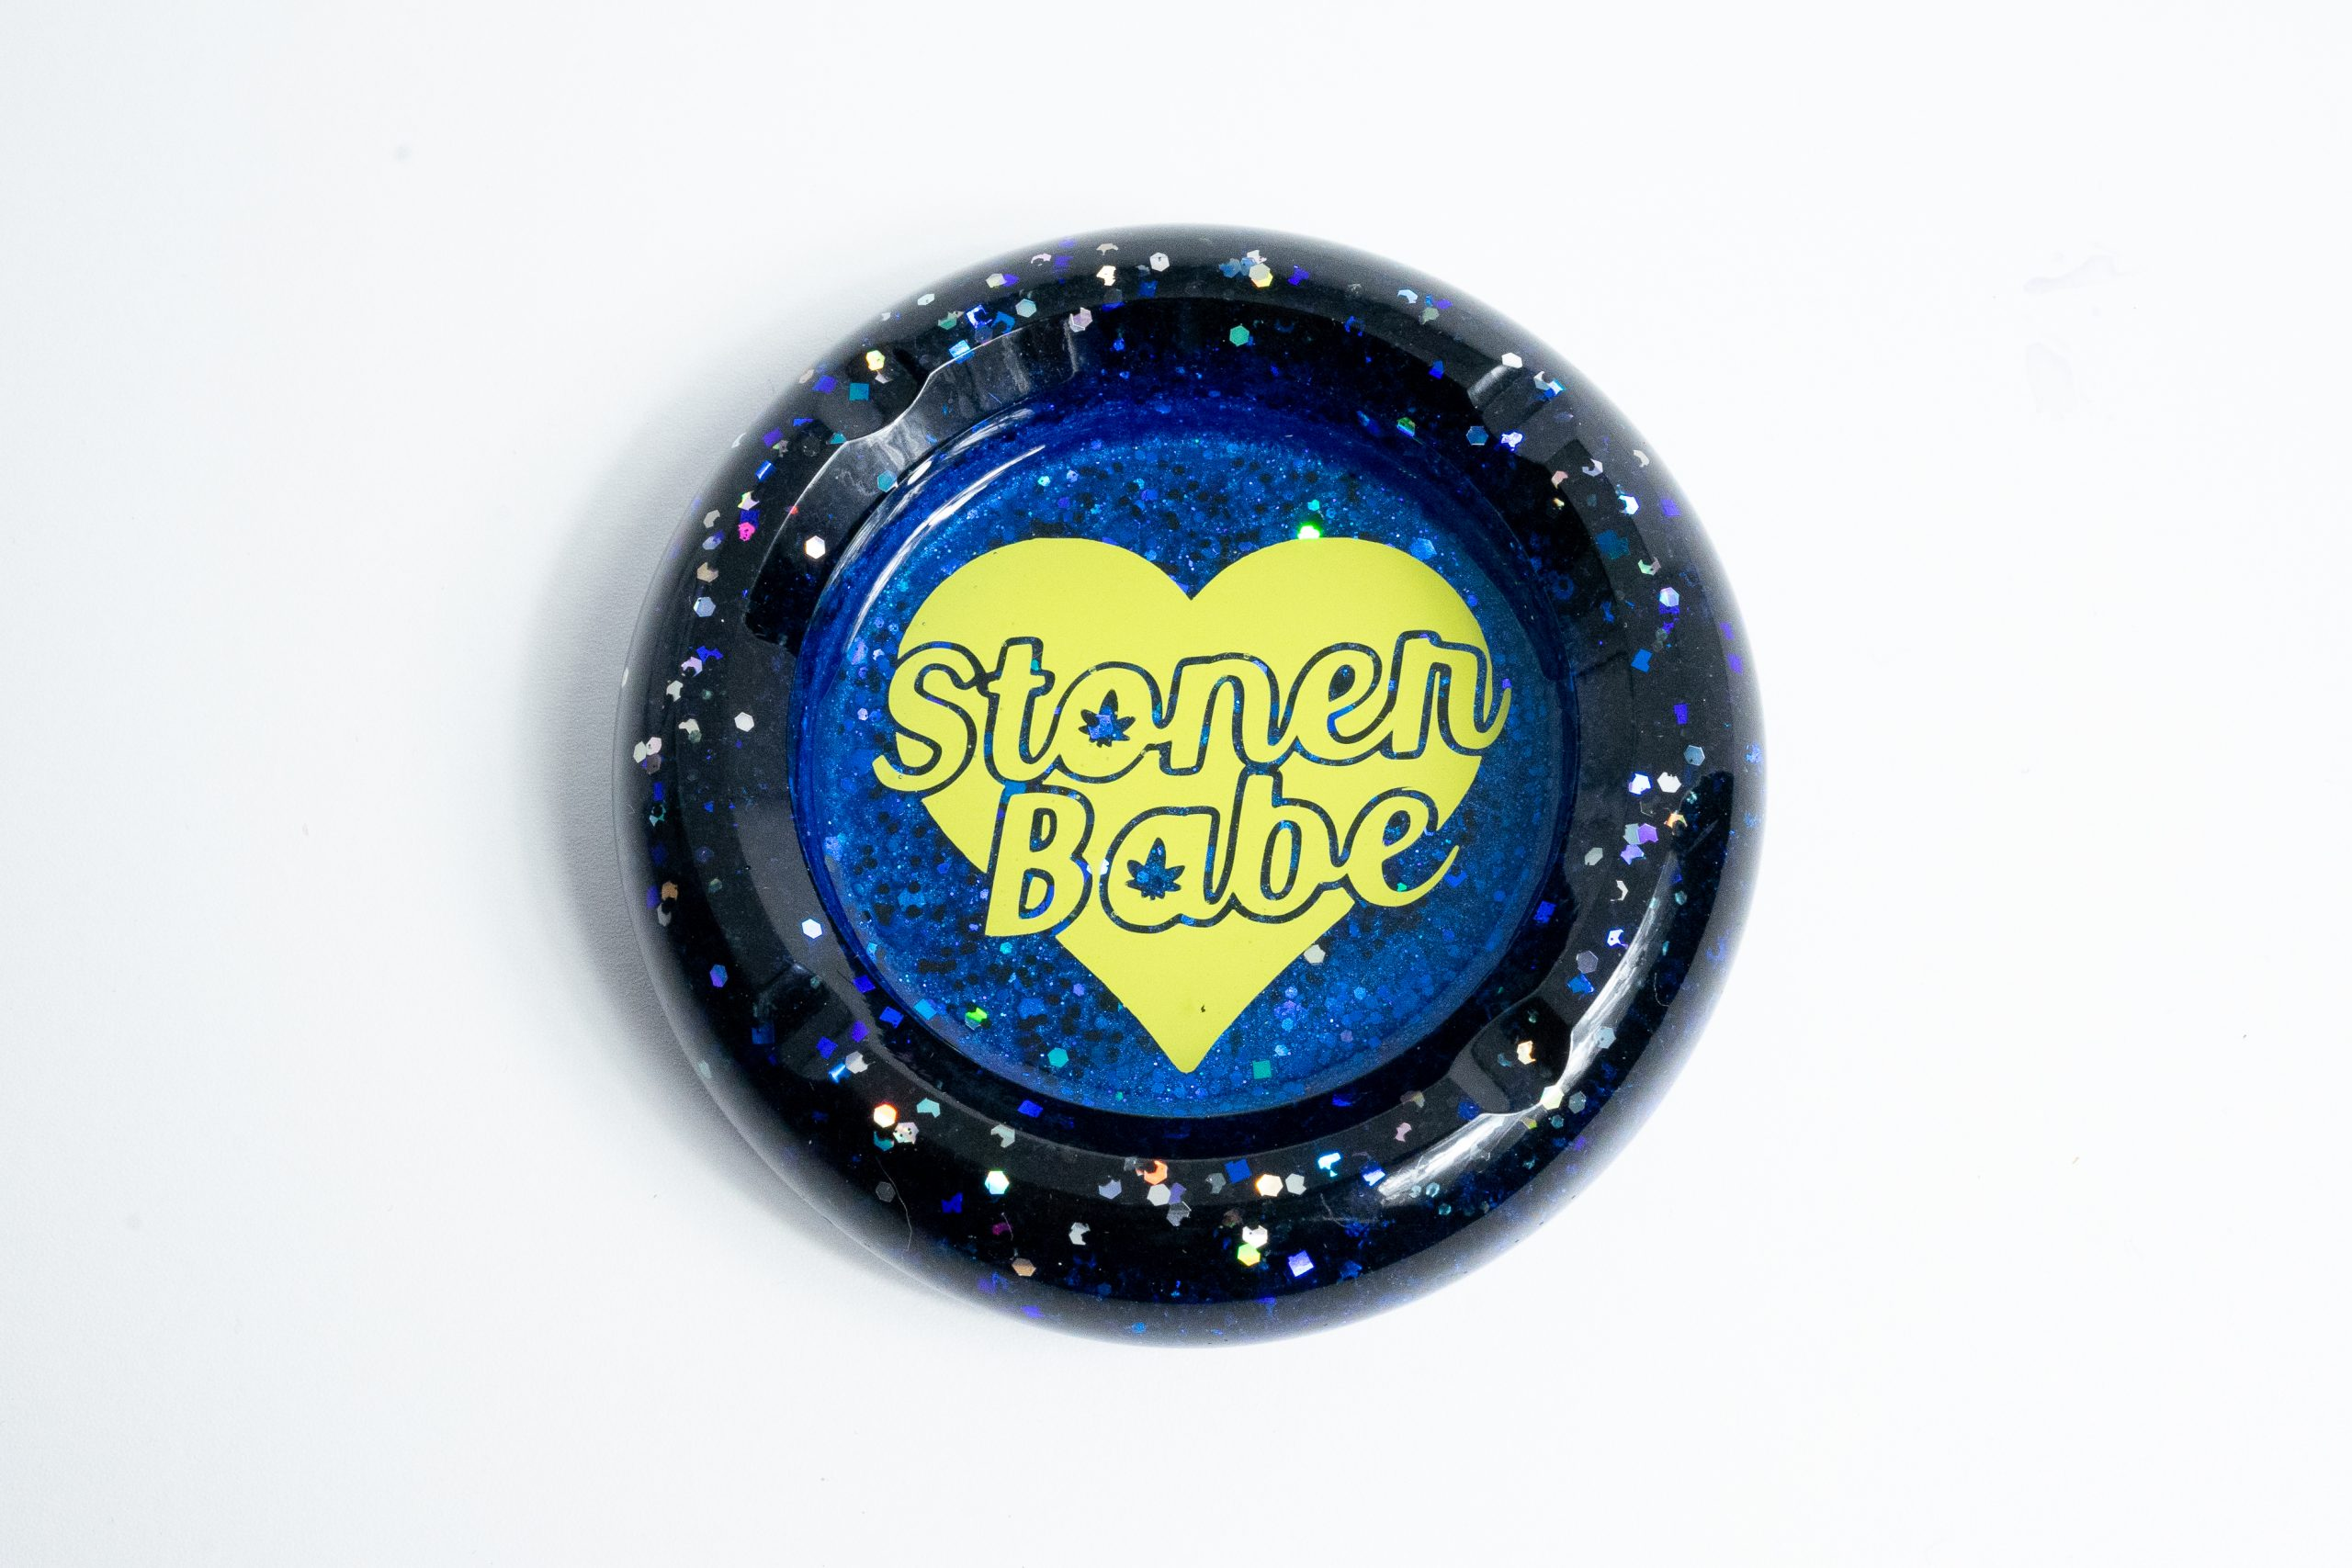 Stoner Babe Ashtray – Black & Blue